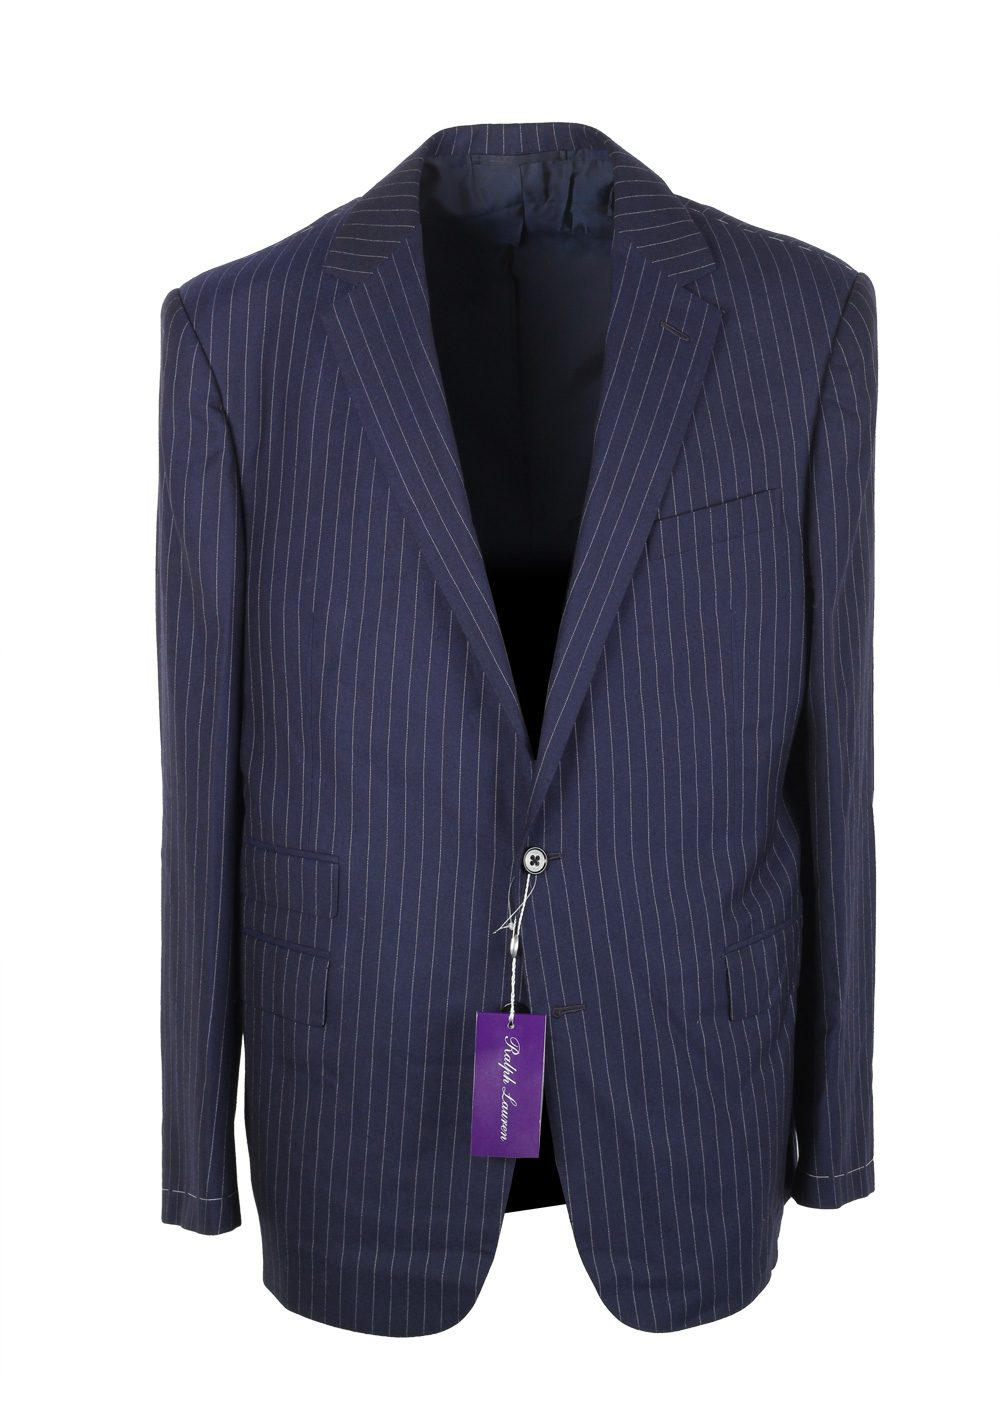 Ralph Lauren Purple Label Blue Suit Size 54 / 44 U.S. In Wool | Costume Limité